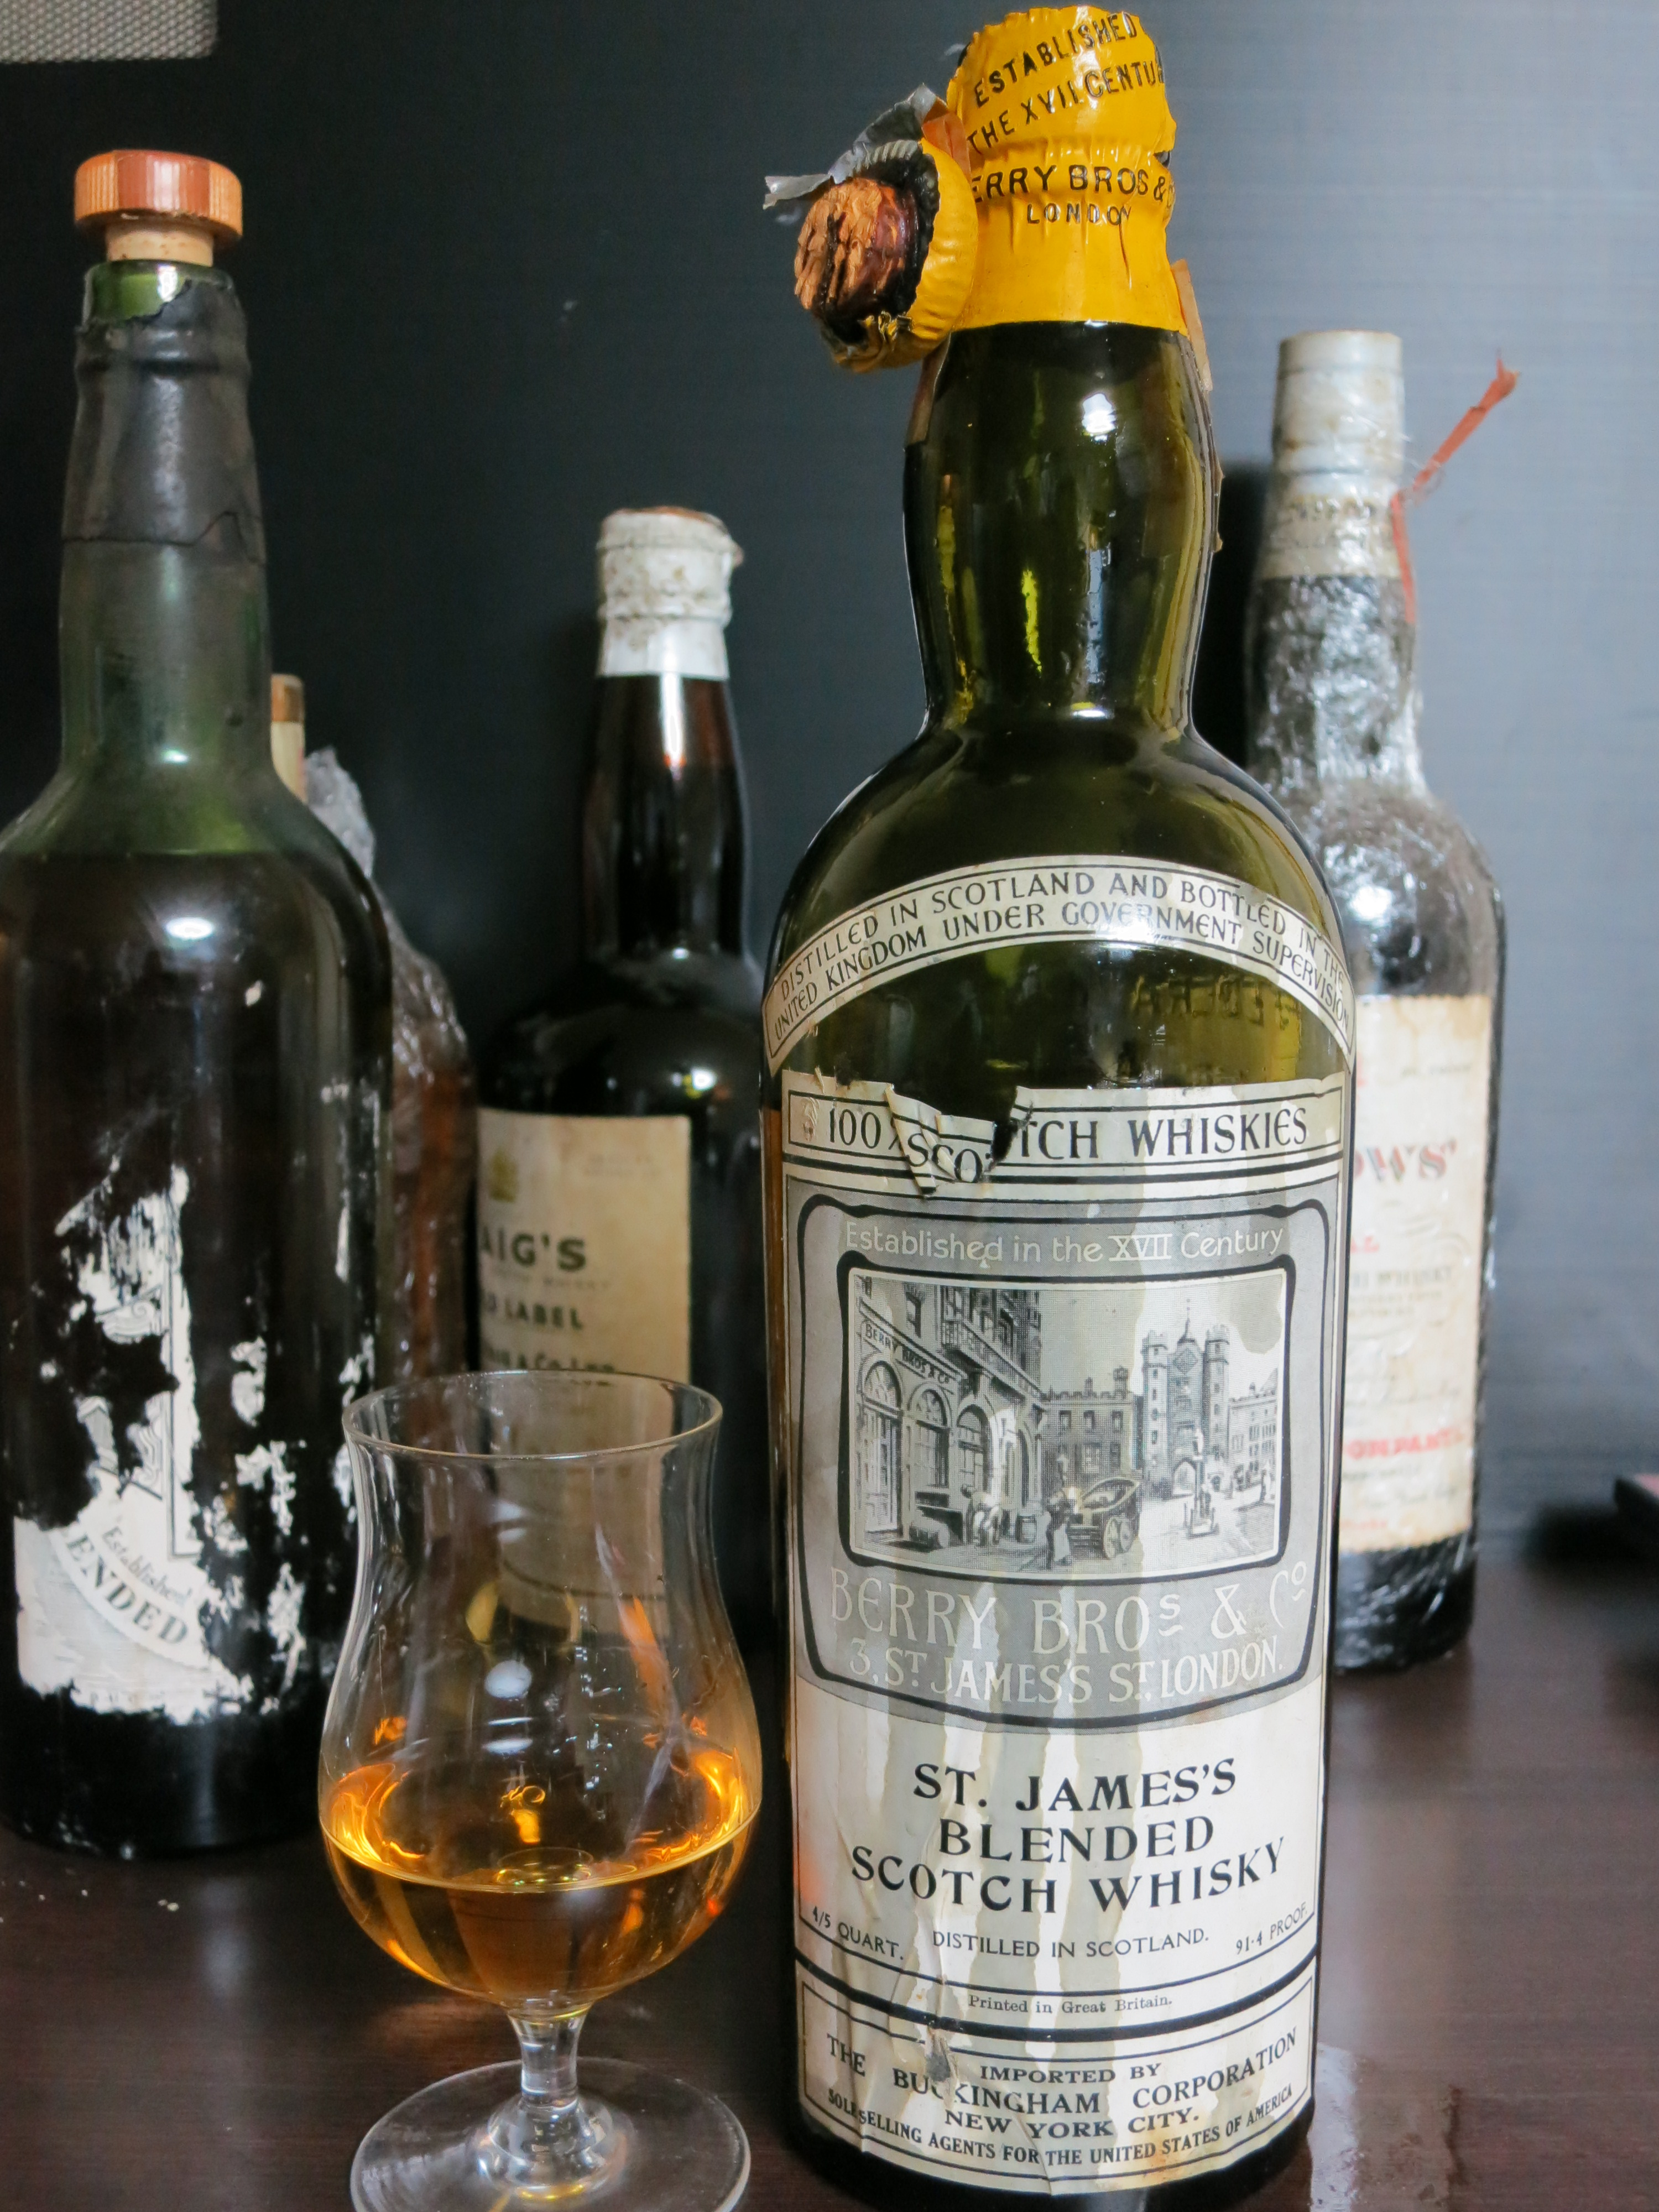 BB&R St. James's Blended Scotch (4/5 quart, 91.4 proof, for USA, The Buckingham Corporation, N.Y.) 1930's